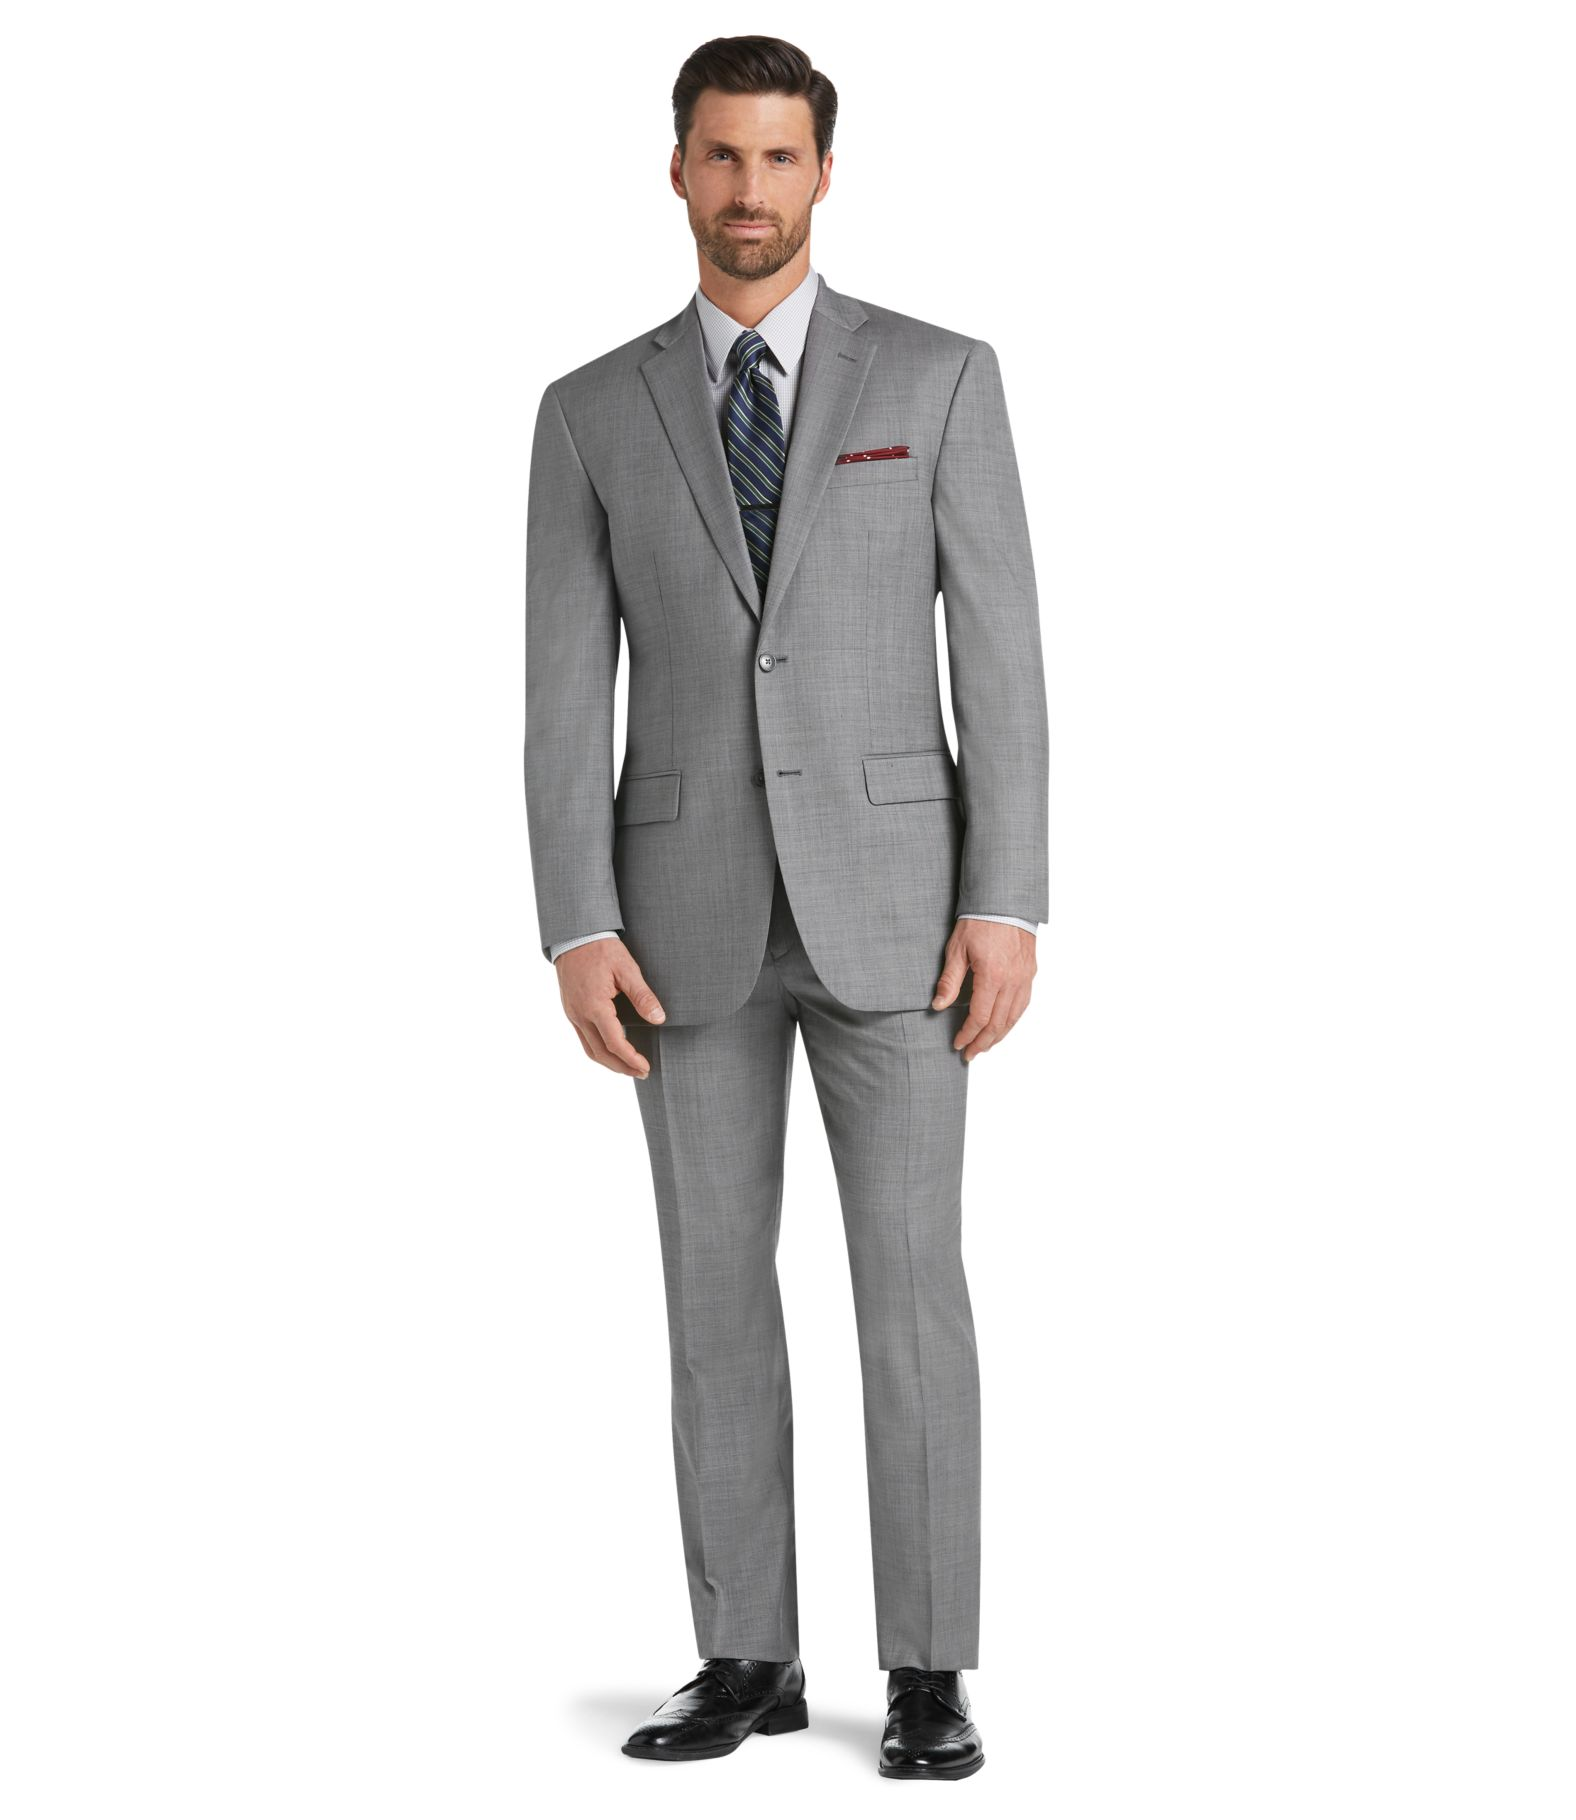 Mens Suits On Sale Near Me | Tulips Clothing